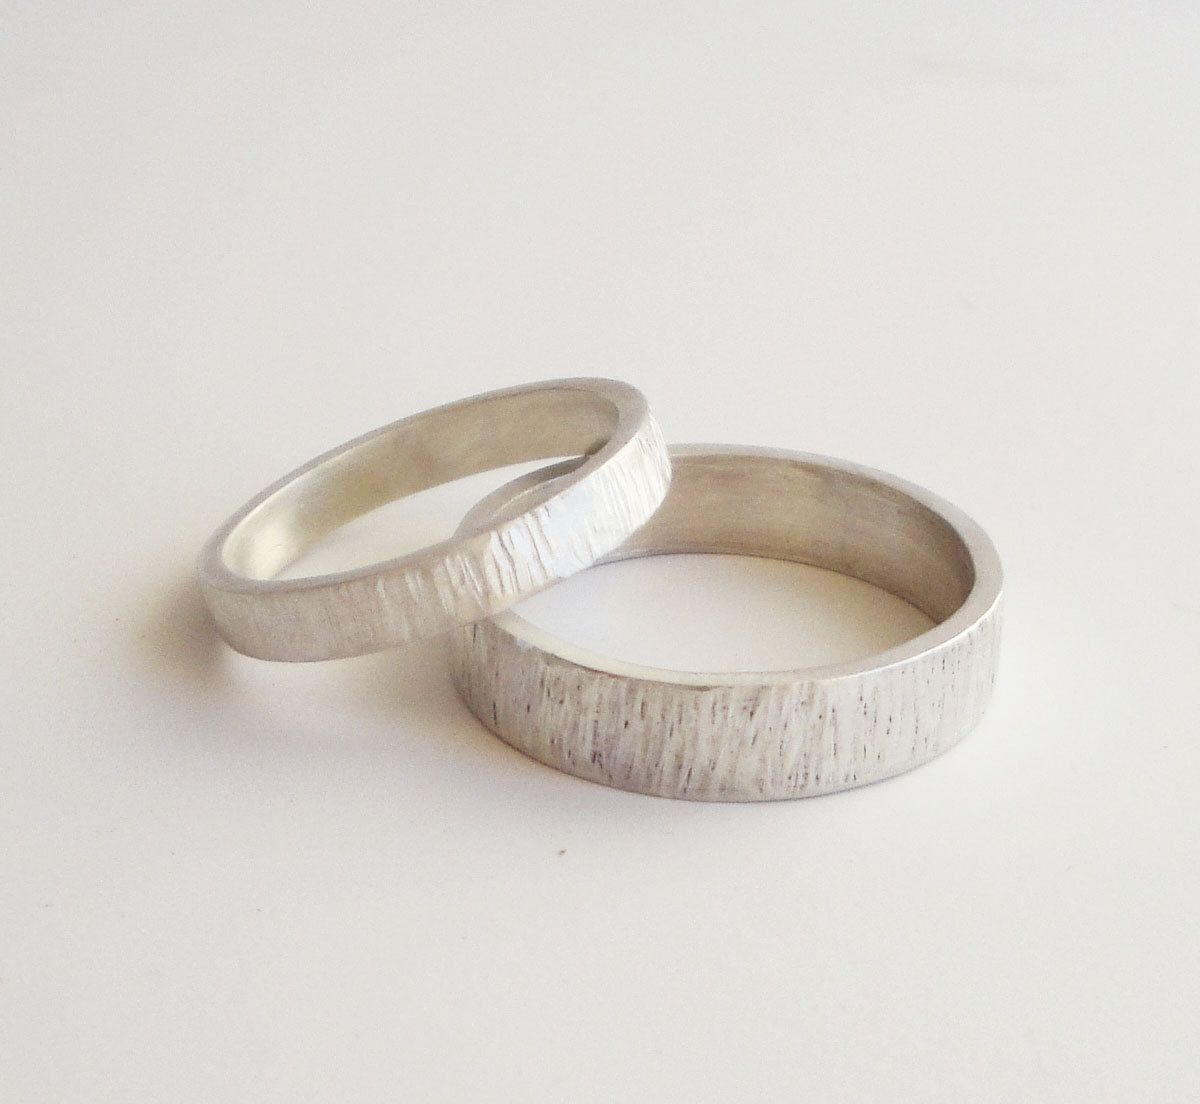 Silver Wedding Rings Set Handmade Silver Wedding Band Set Etsy Silver Wedding Bands Wooden Wedding Ring Silver Wedding Rings Sets